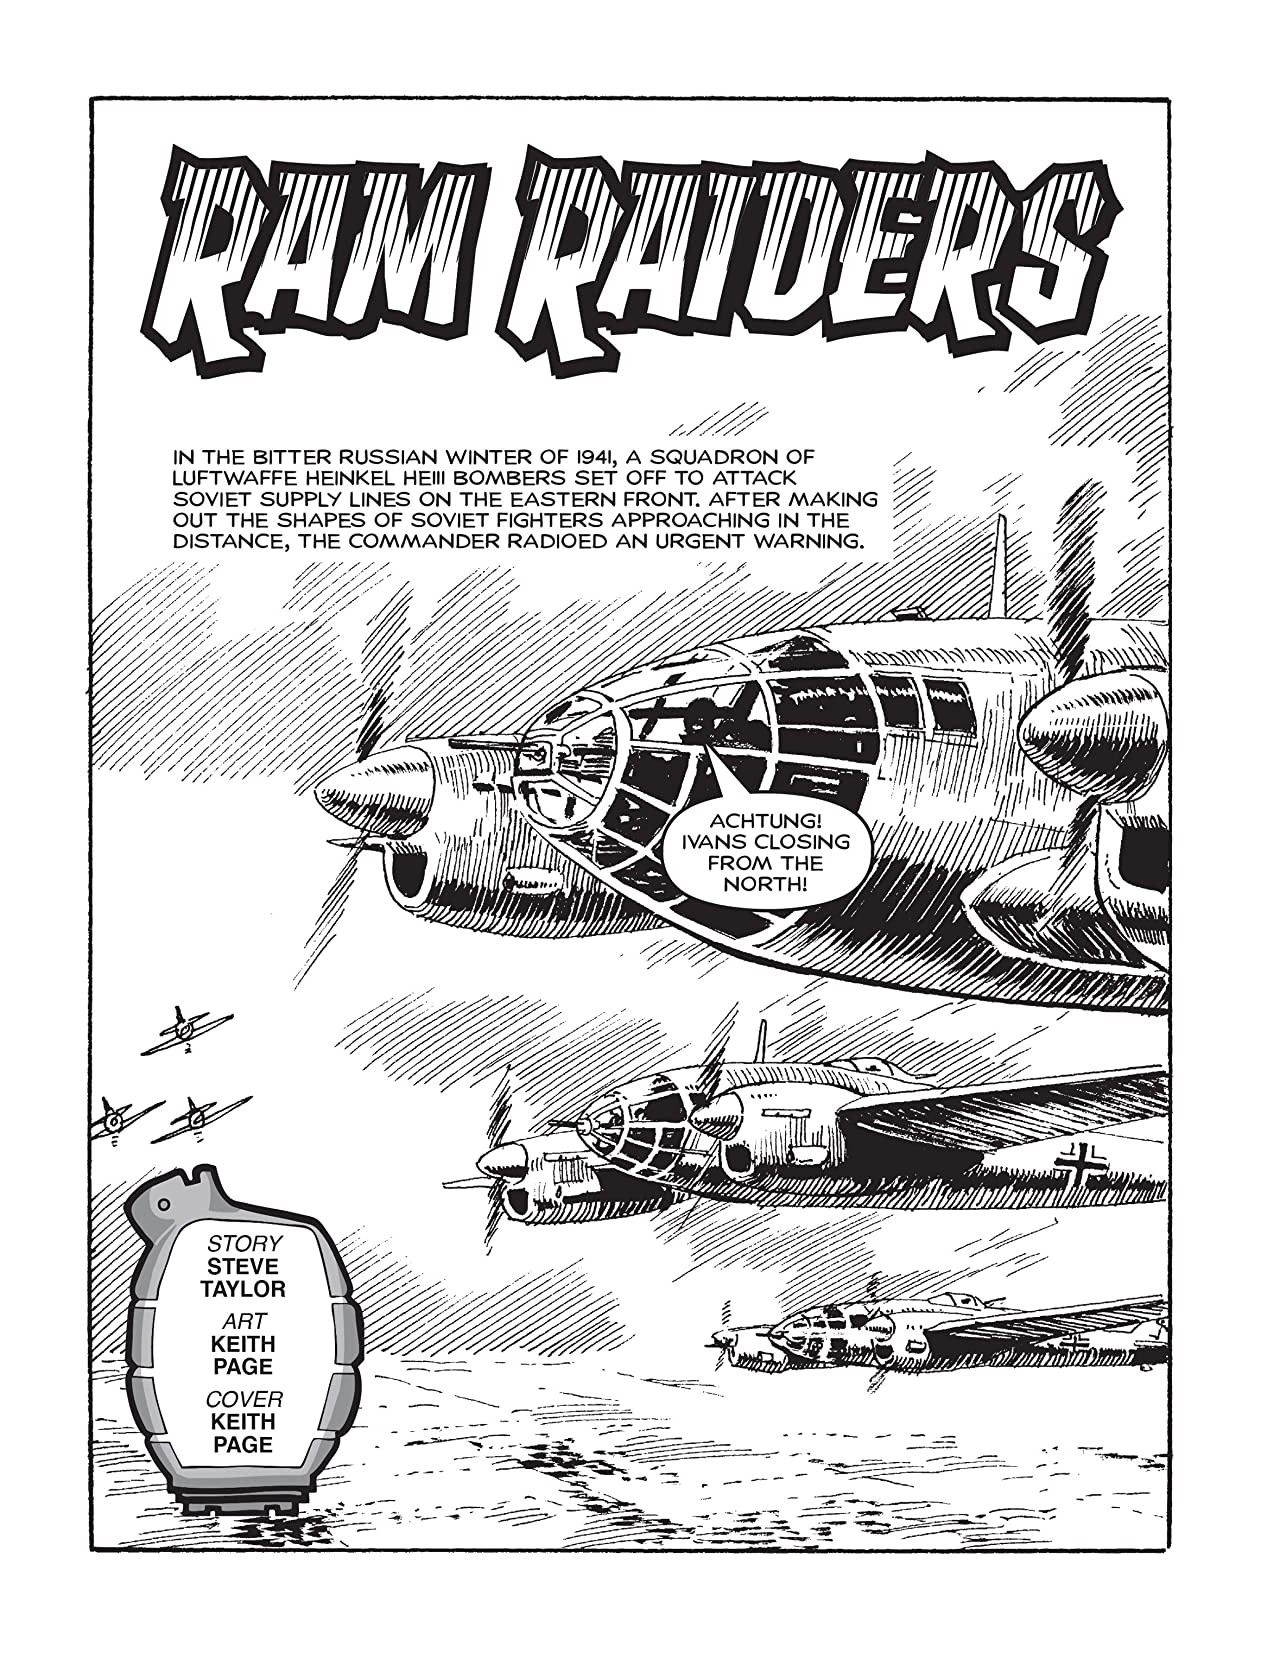 Commando #4941: Ram Raiders